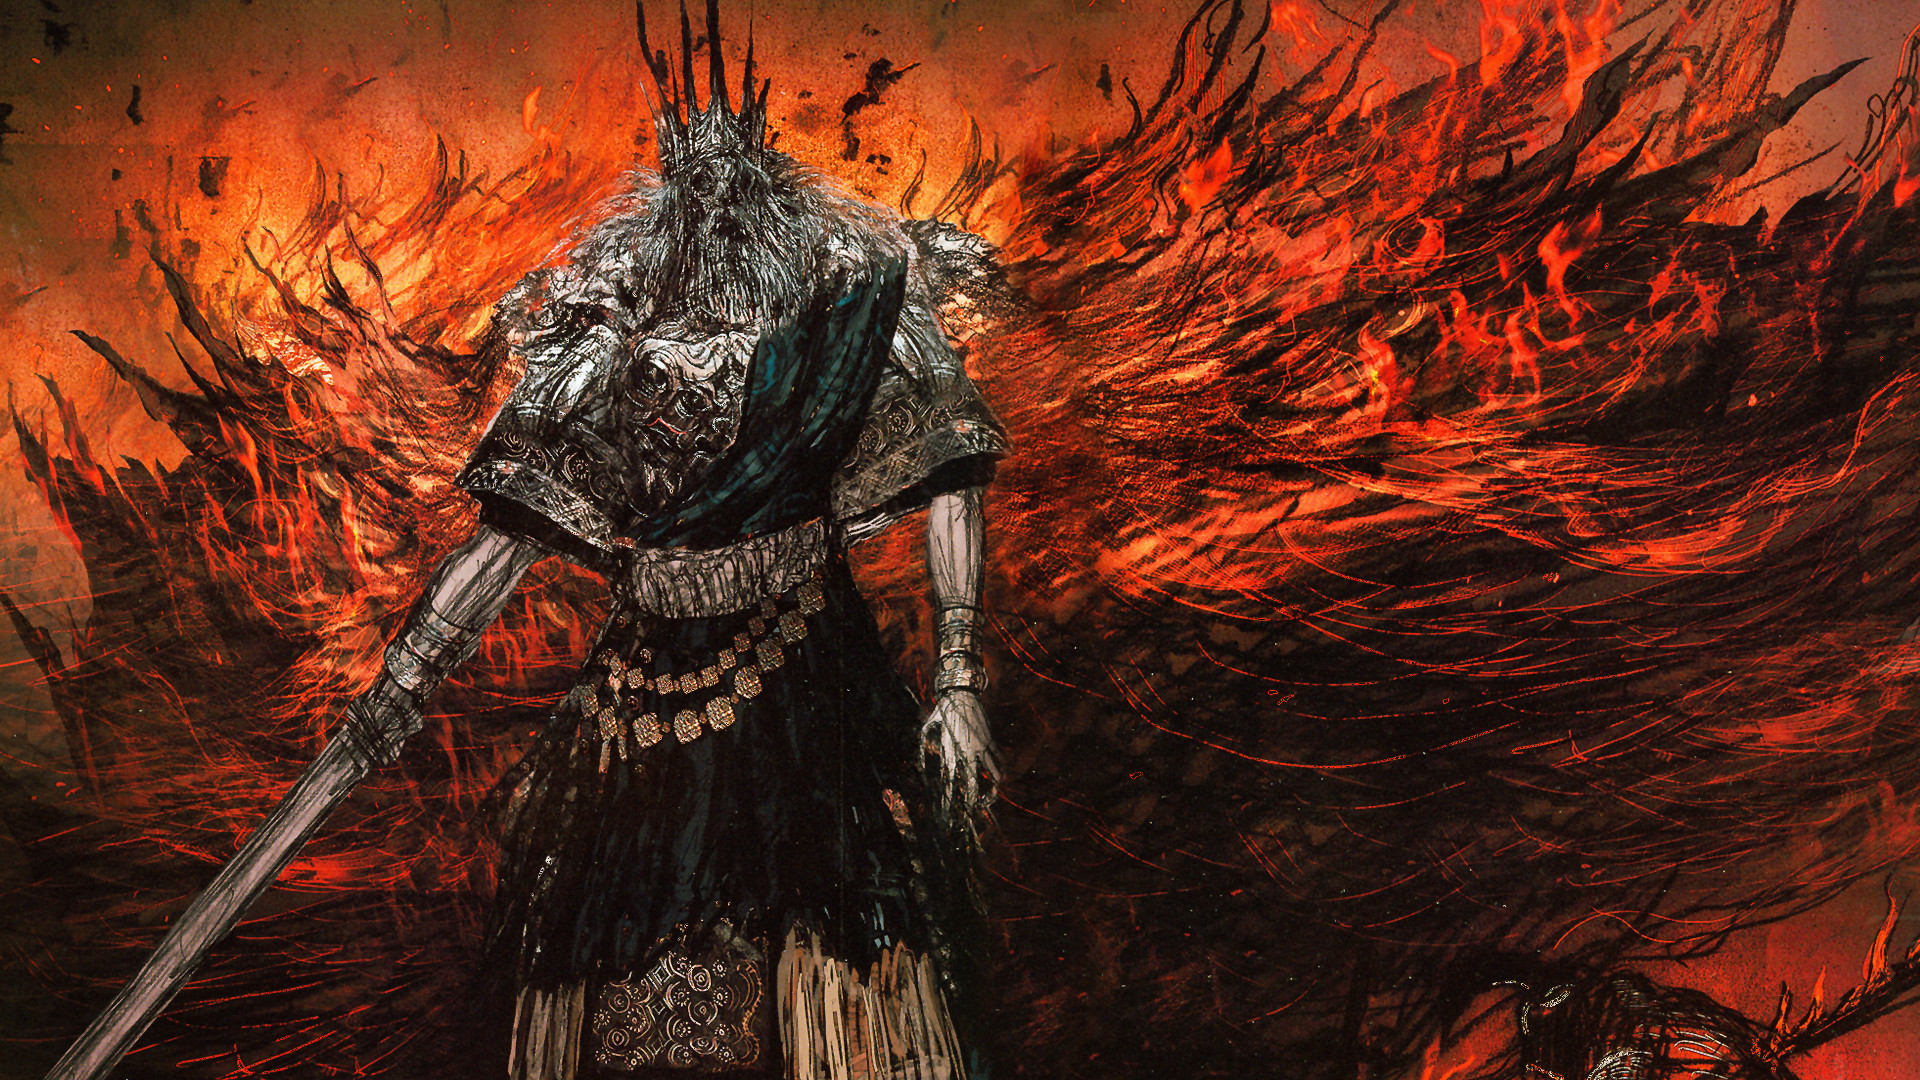 dark souls wallpapers Archives   Page 3 of 4   1920x1080 Wallpapers 1920x1080